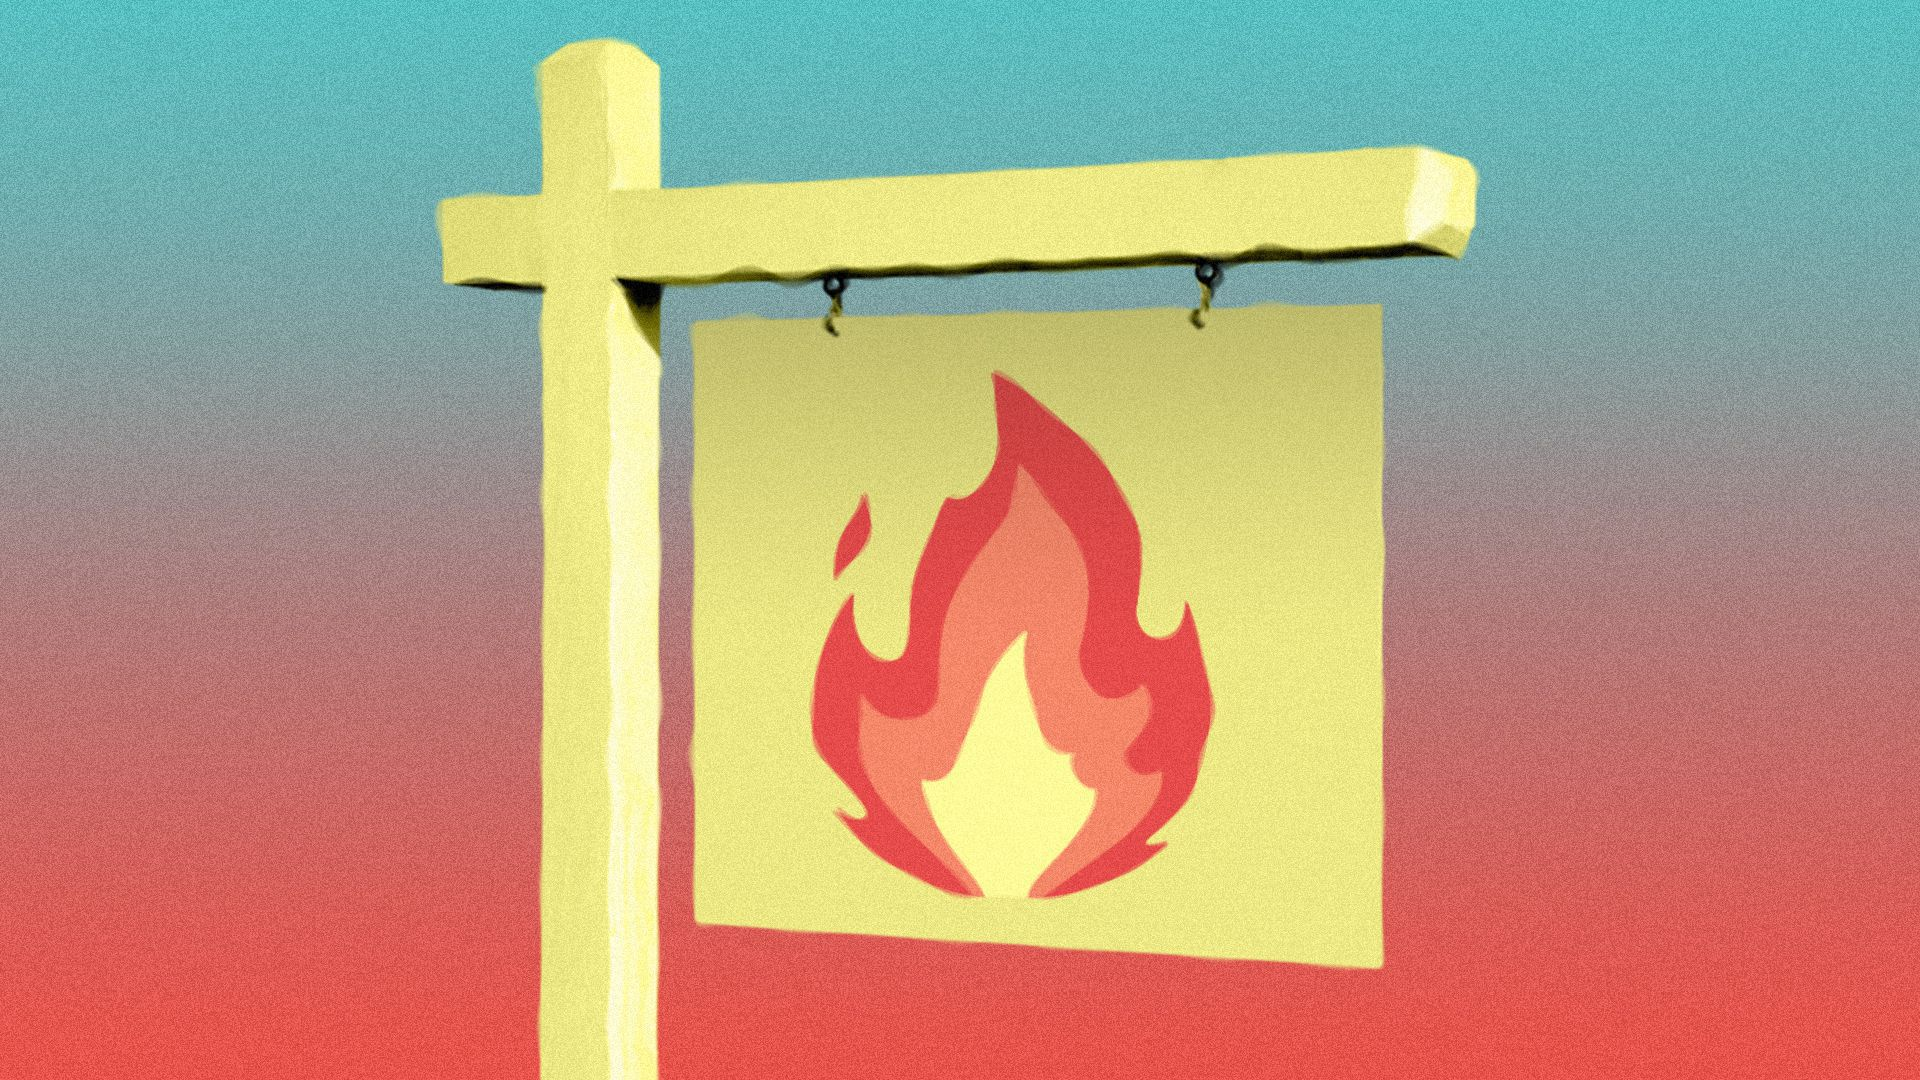 Illustration of a real estate for sale sign with a fire emoji on it.